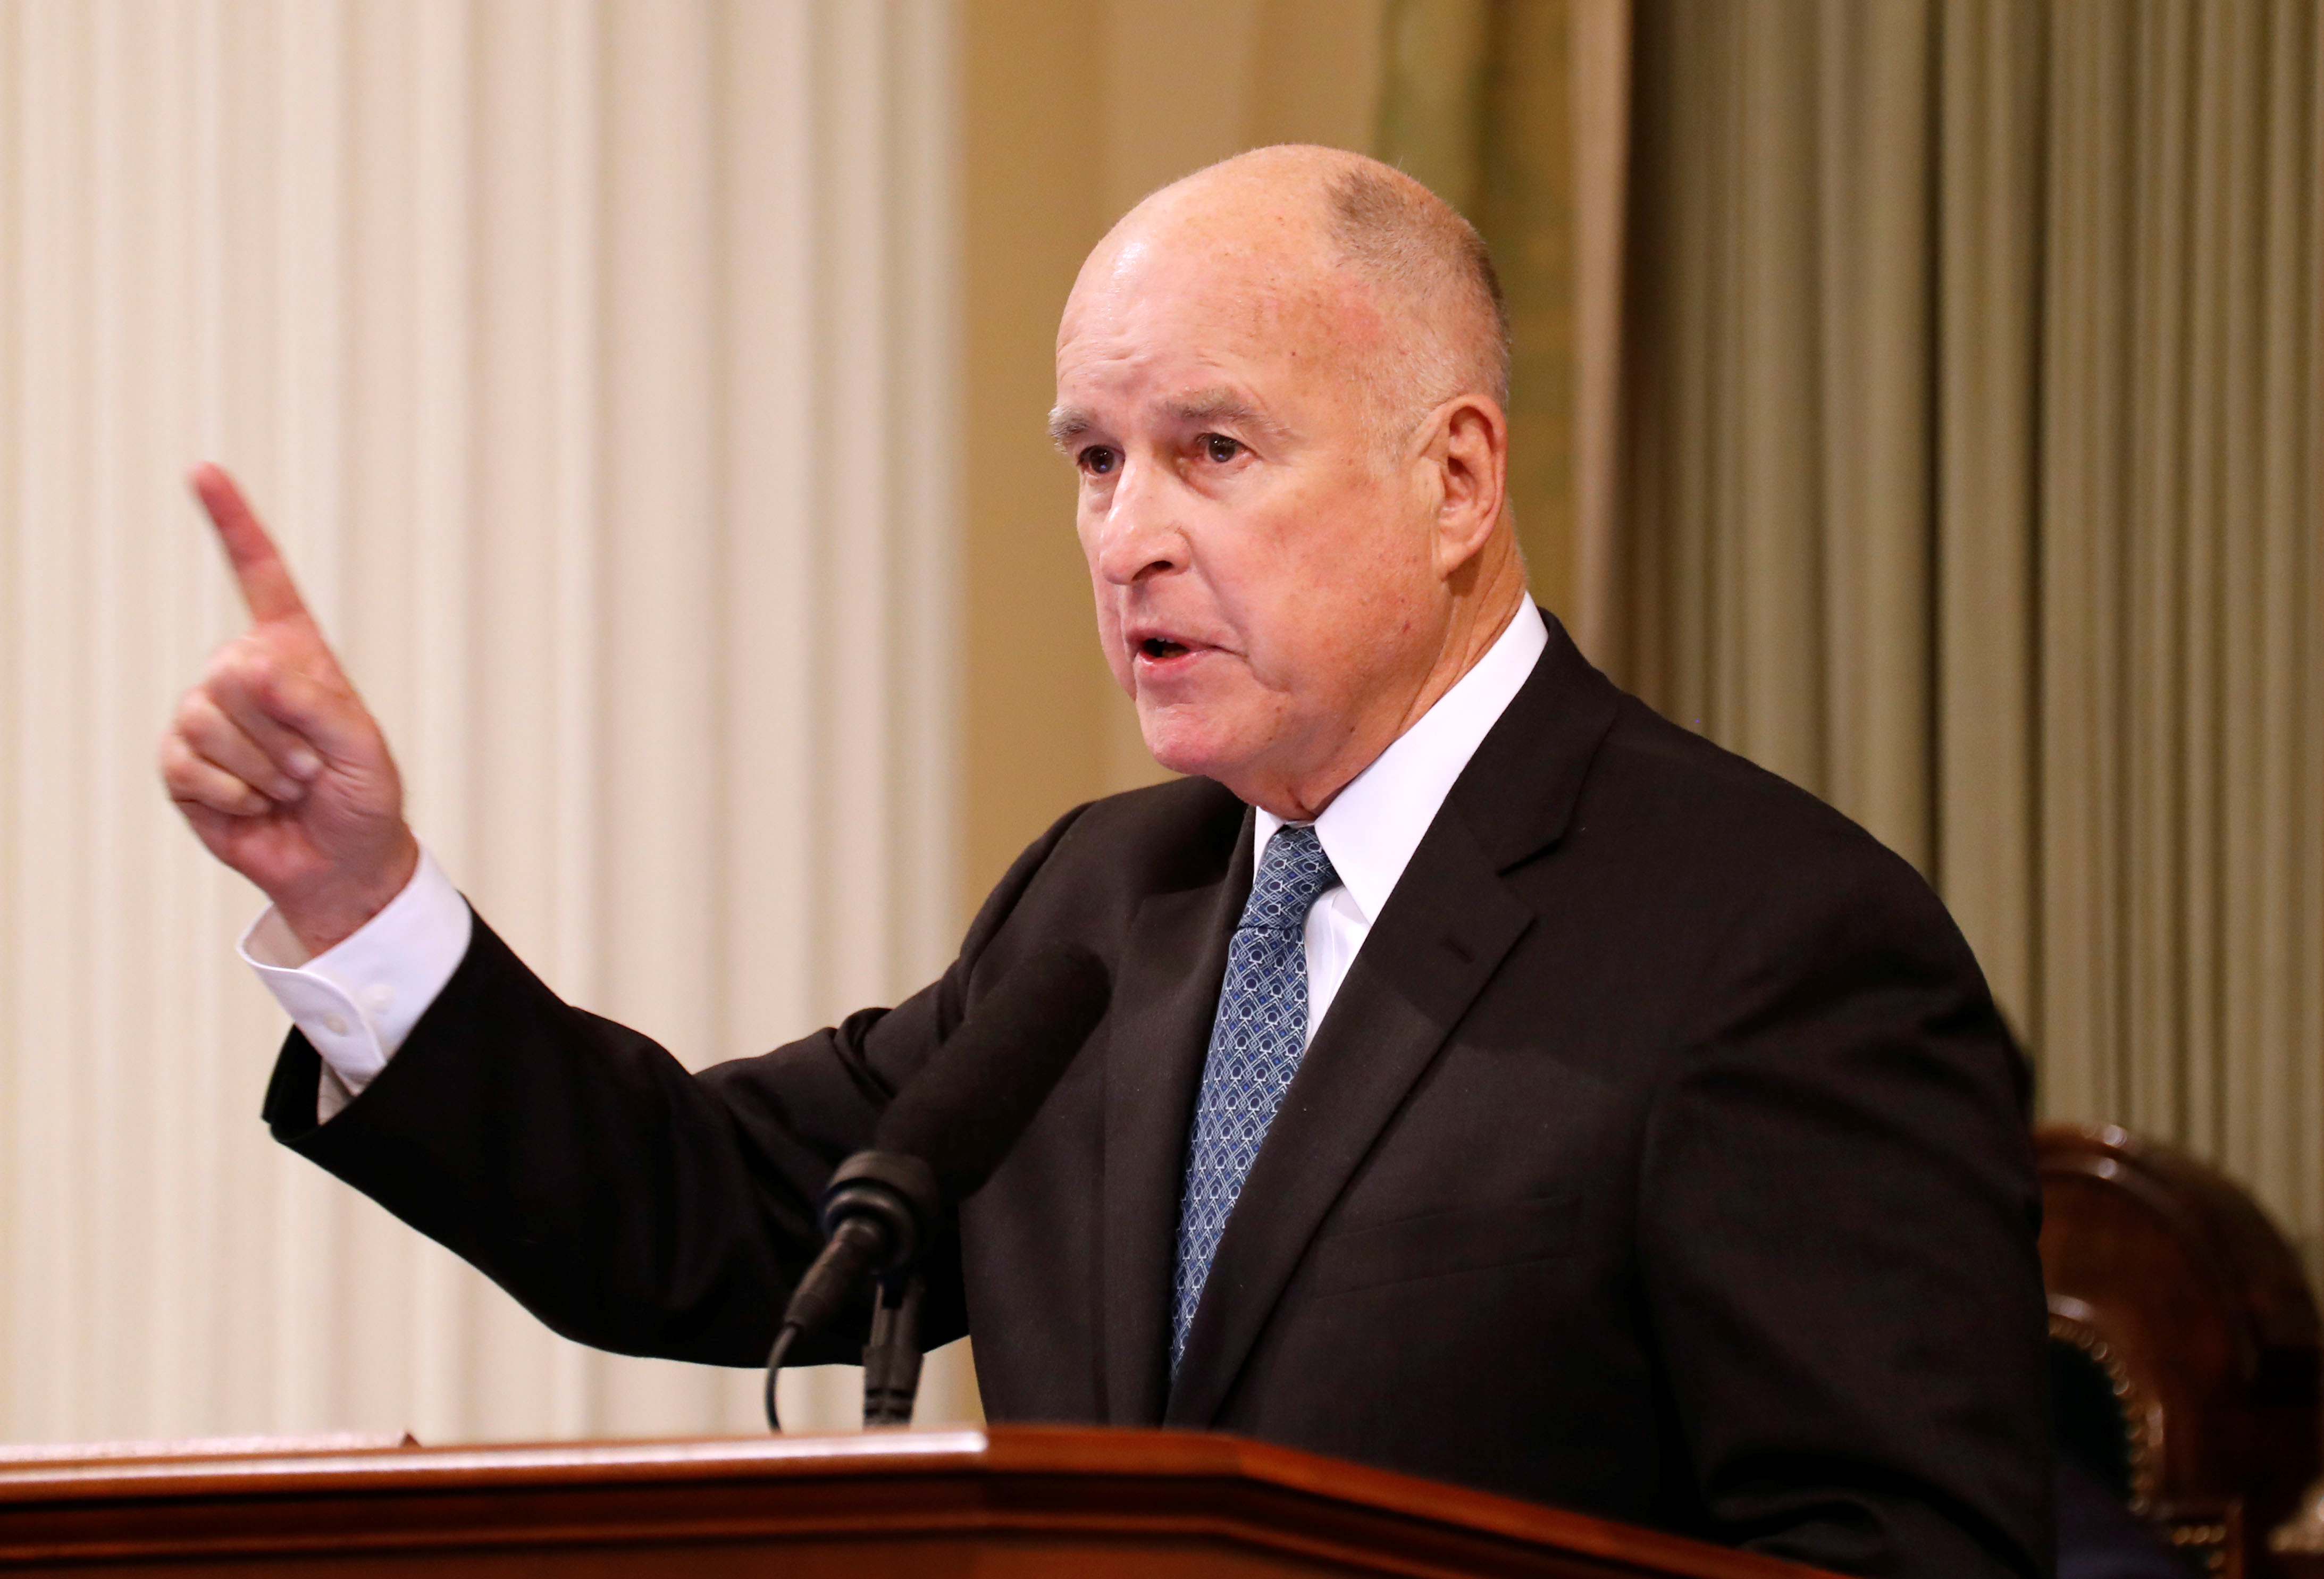 California Governor Jerry Brown delivers his final state of the state address in Sacramento,